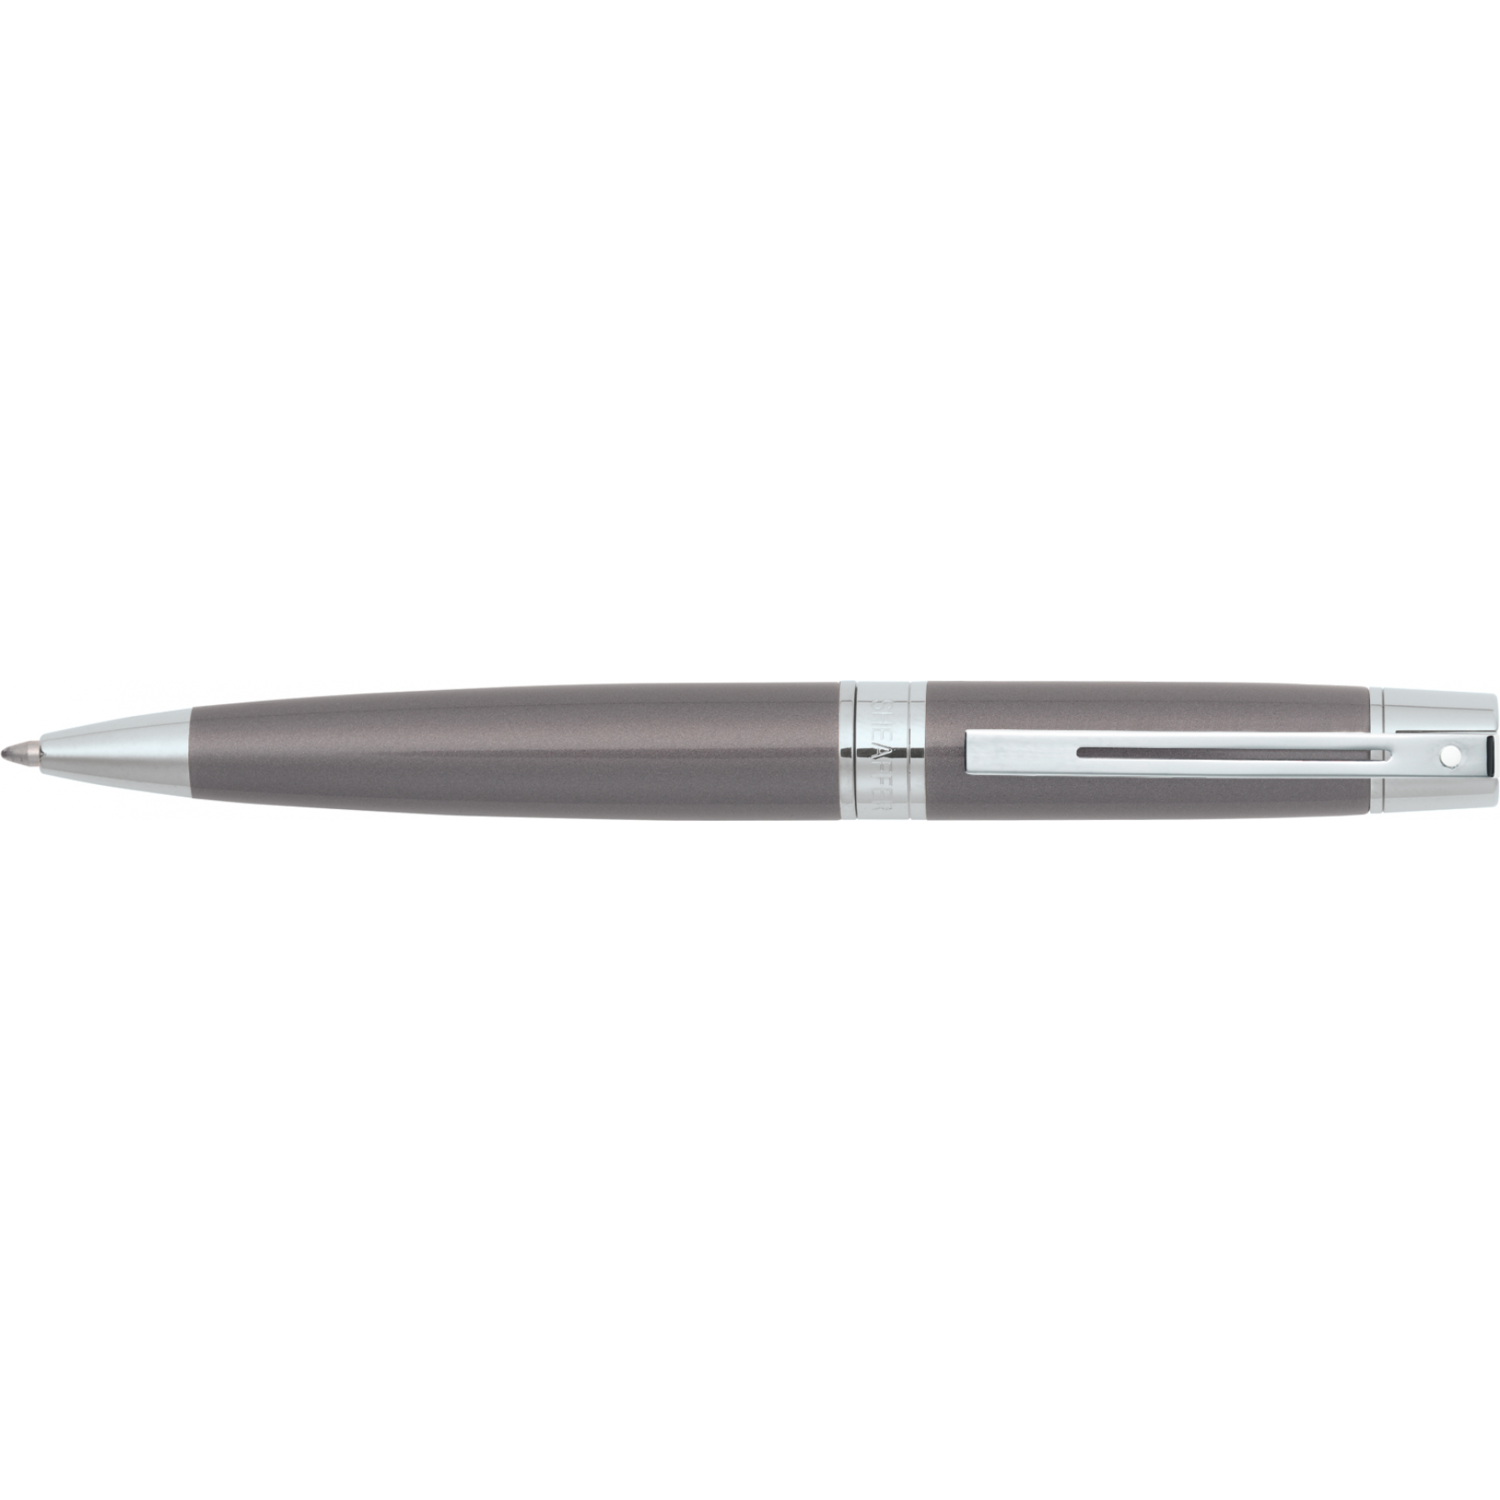 Sheaffer 300 balpen  metallic grey